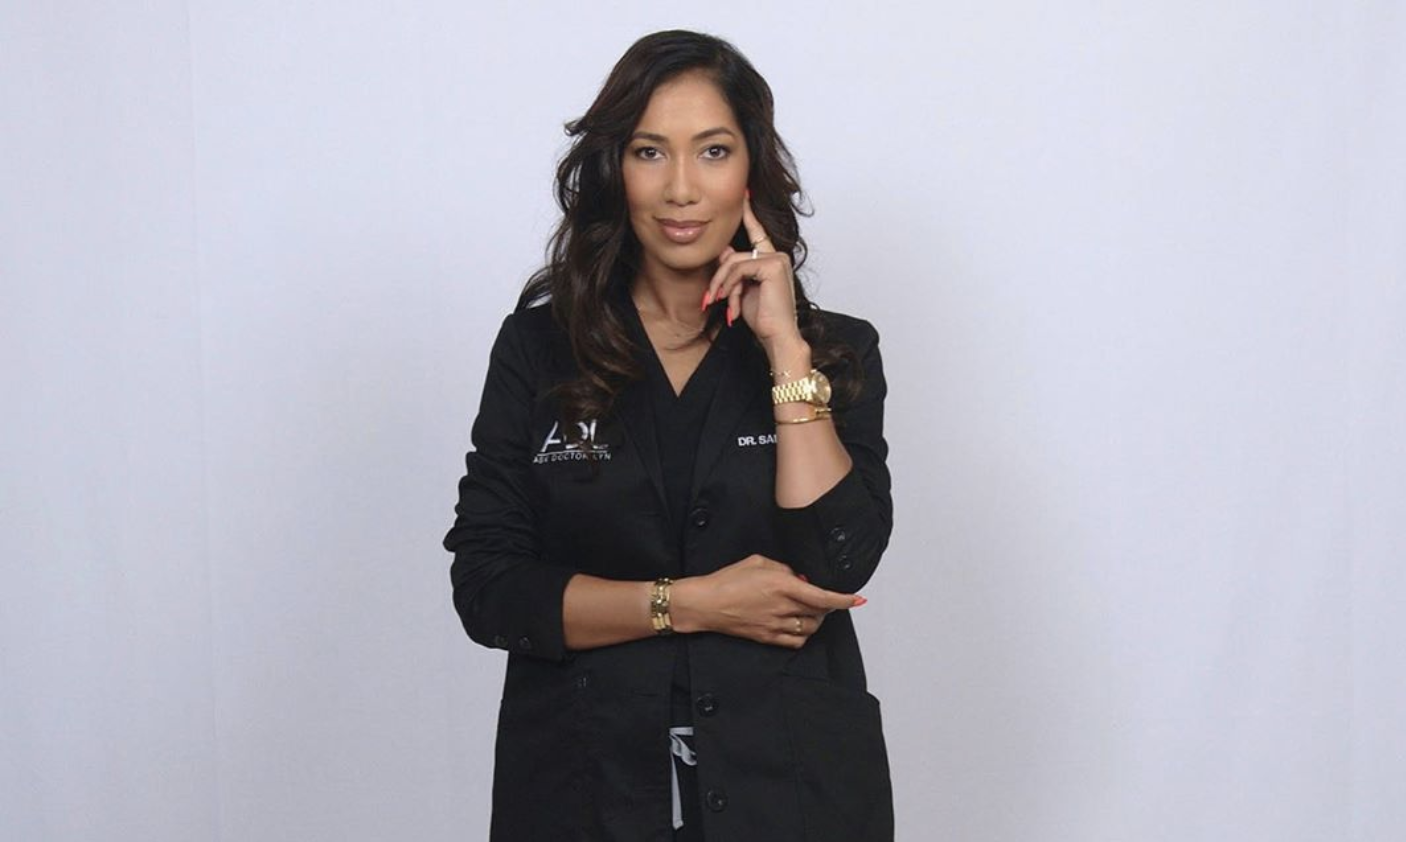 Curious About CBD? Physician Safiyah Lyn-Lassiter Explains The Basics About This Wellness Product